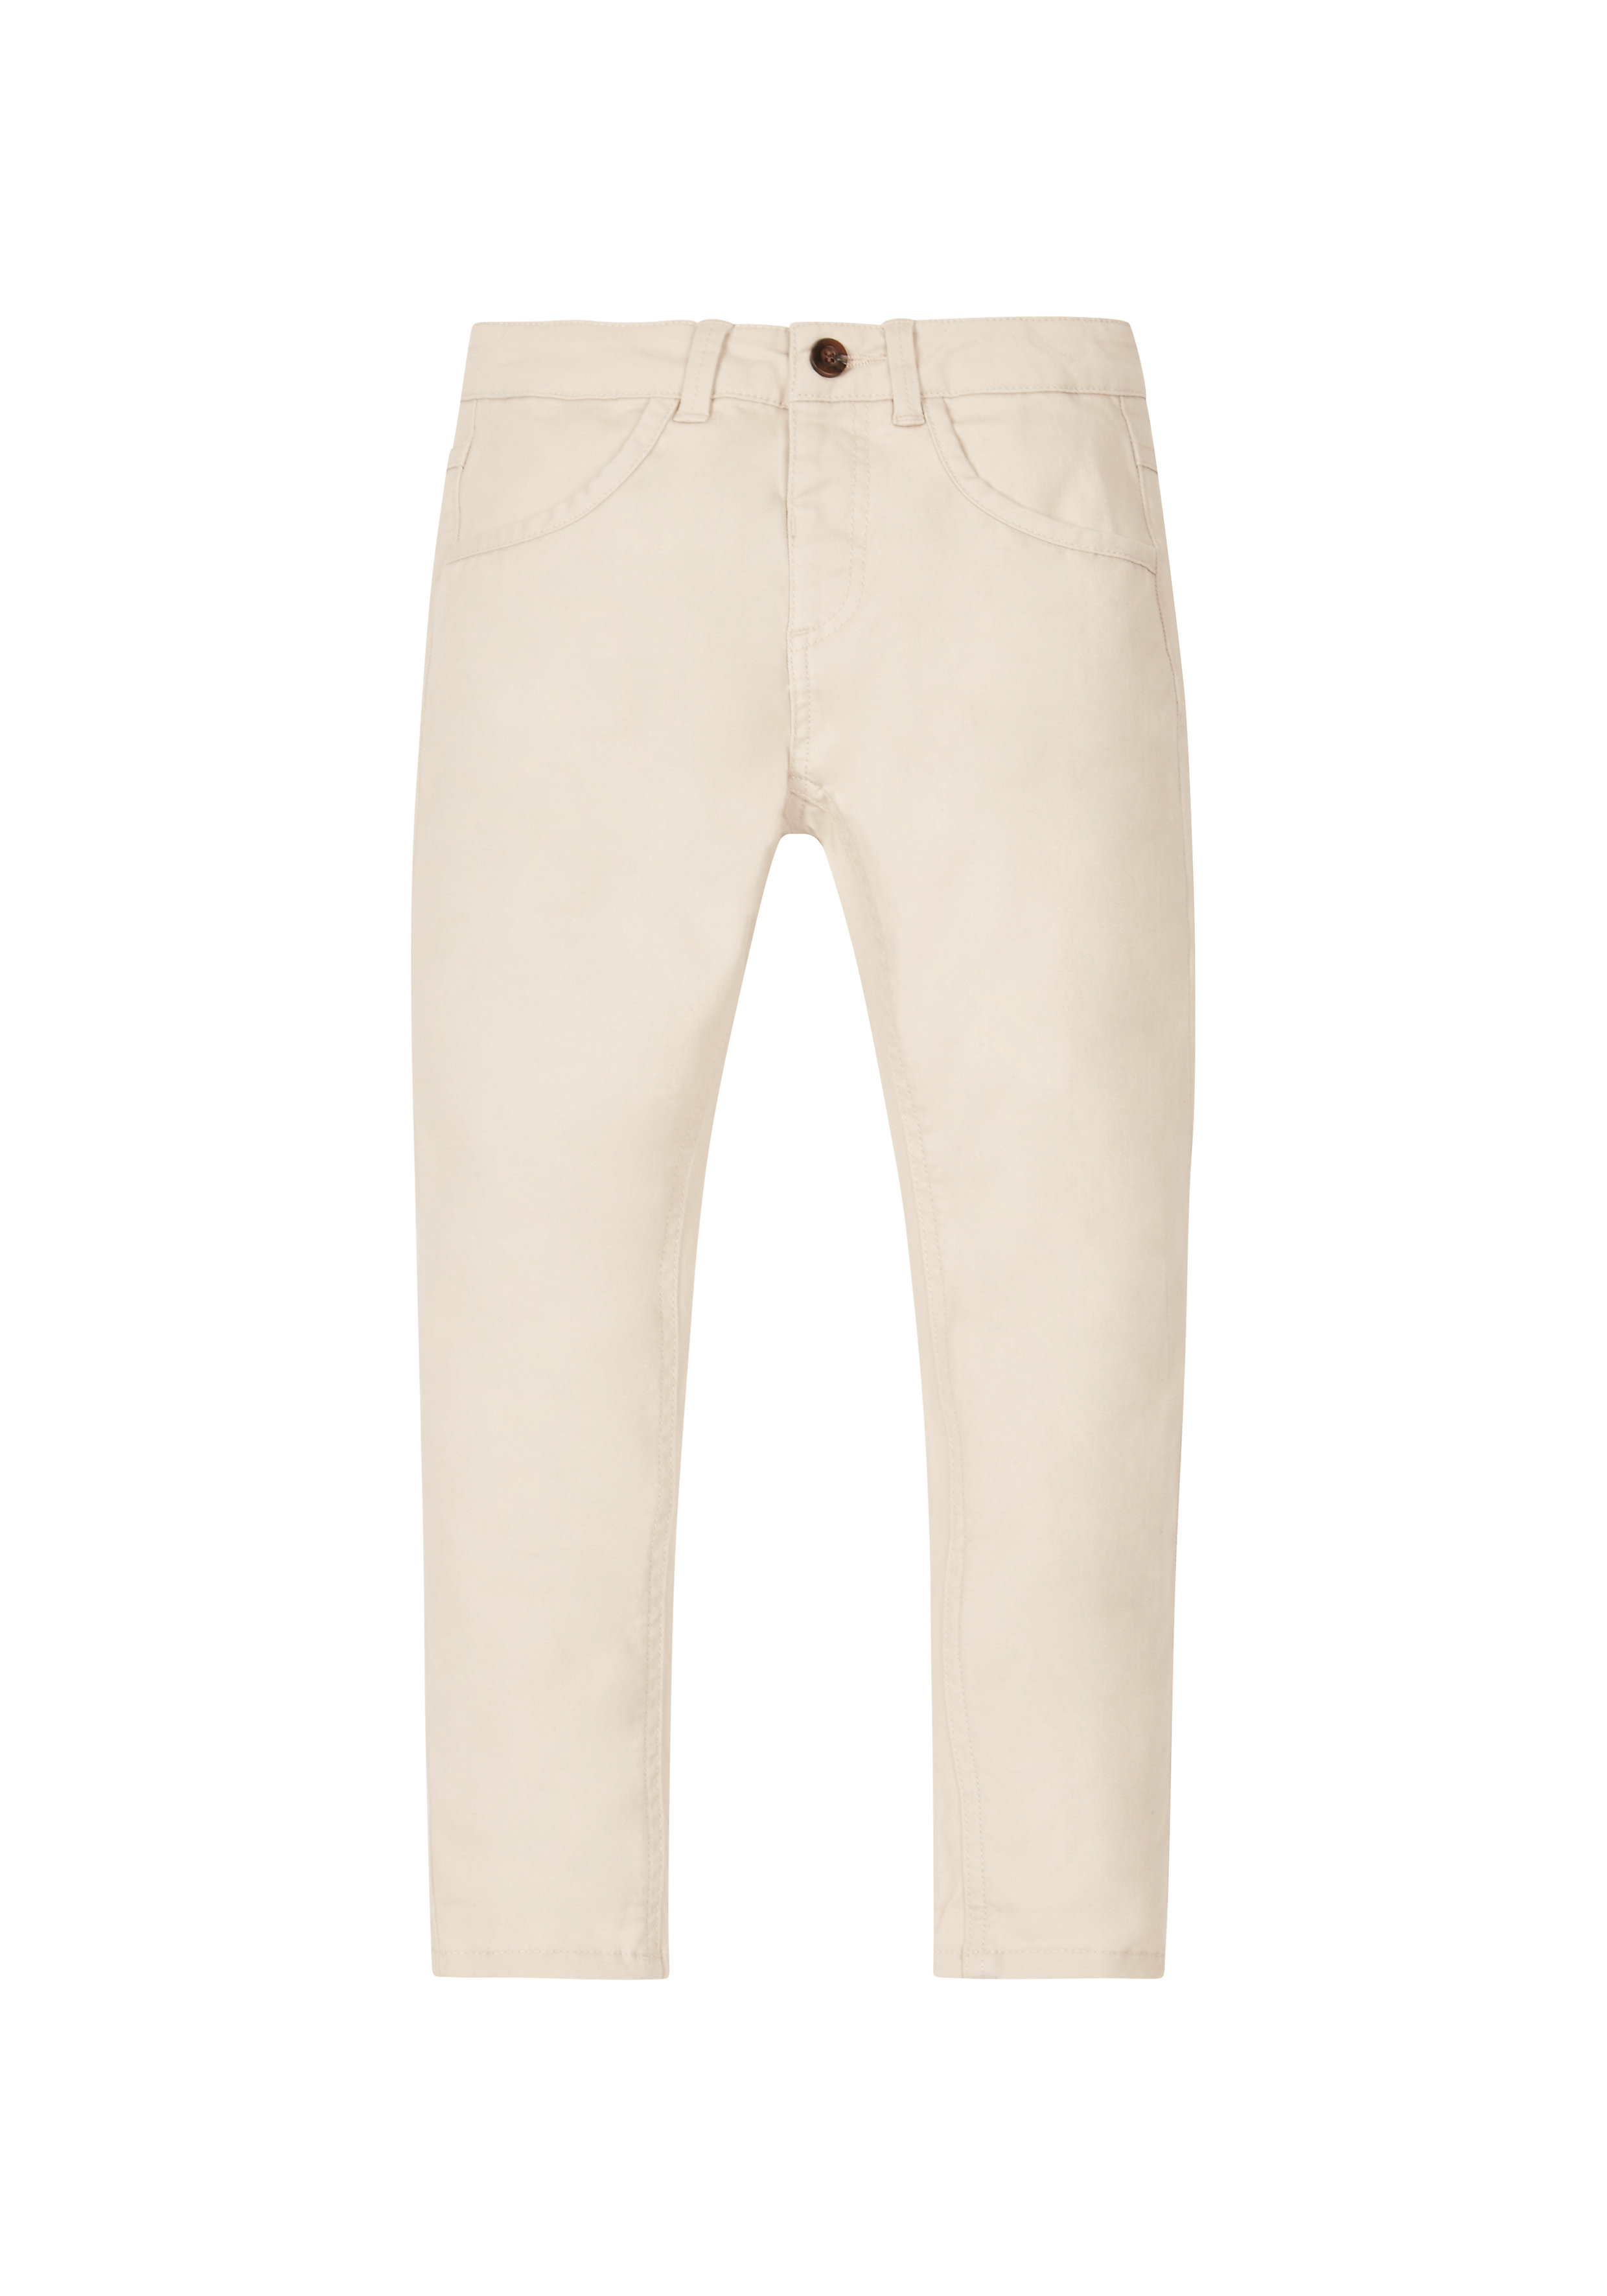 Mothercare   Boys Twill Trousers - Beige